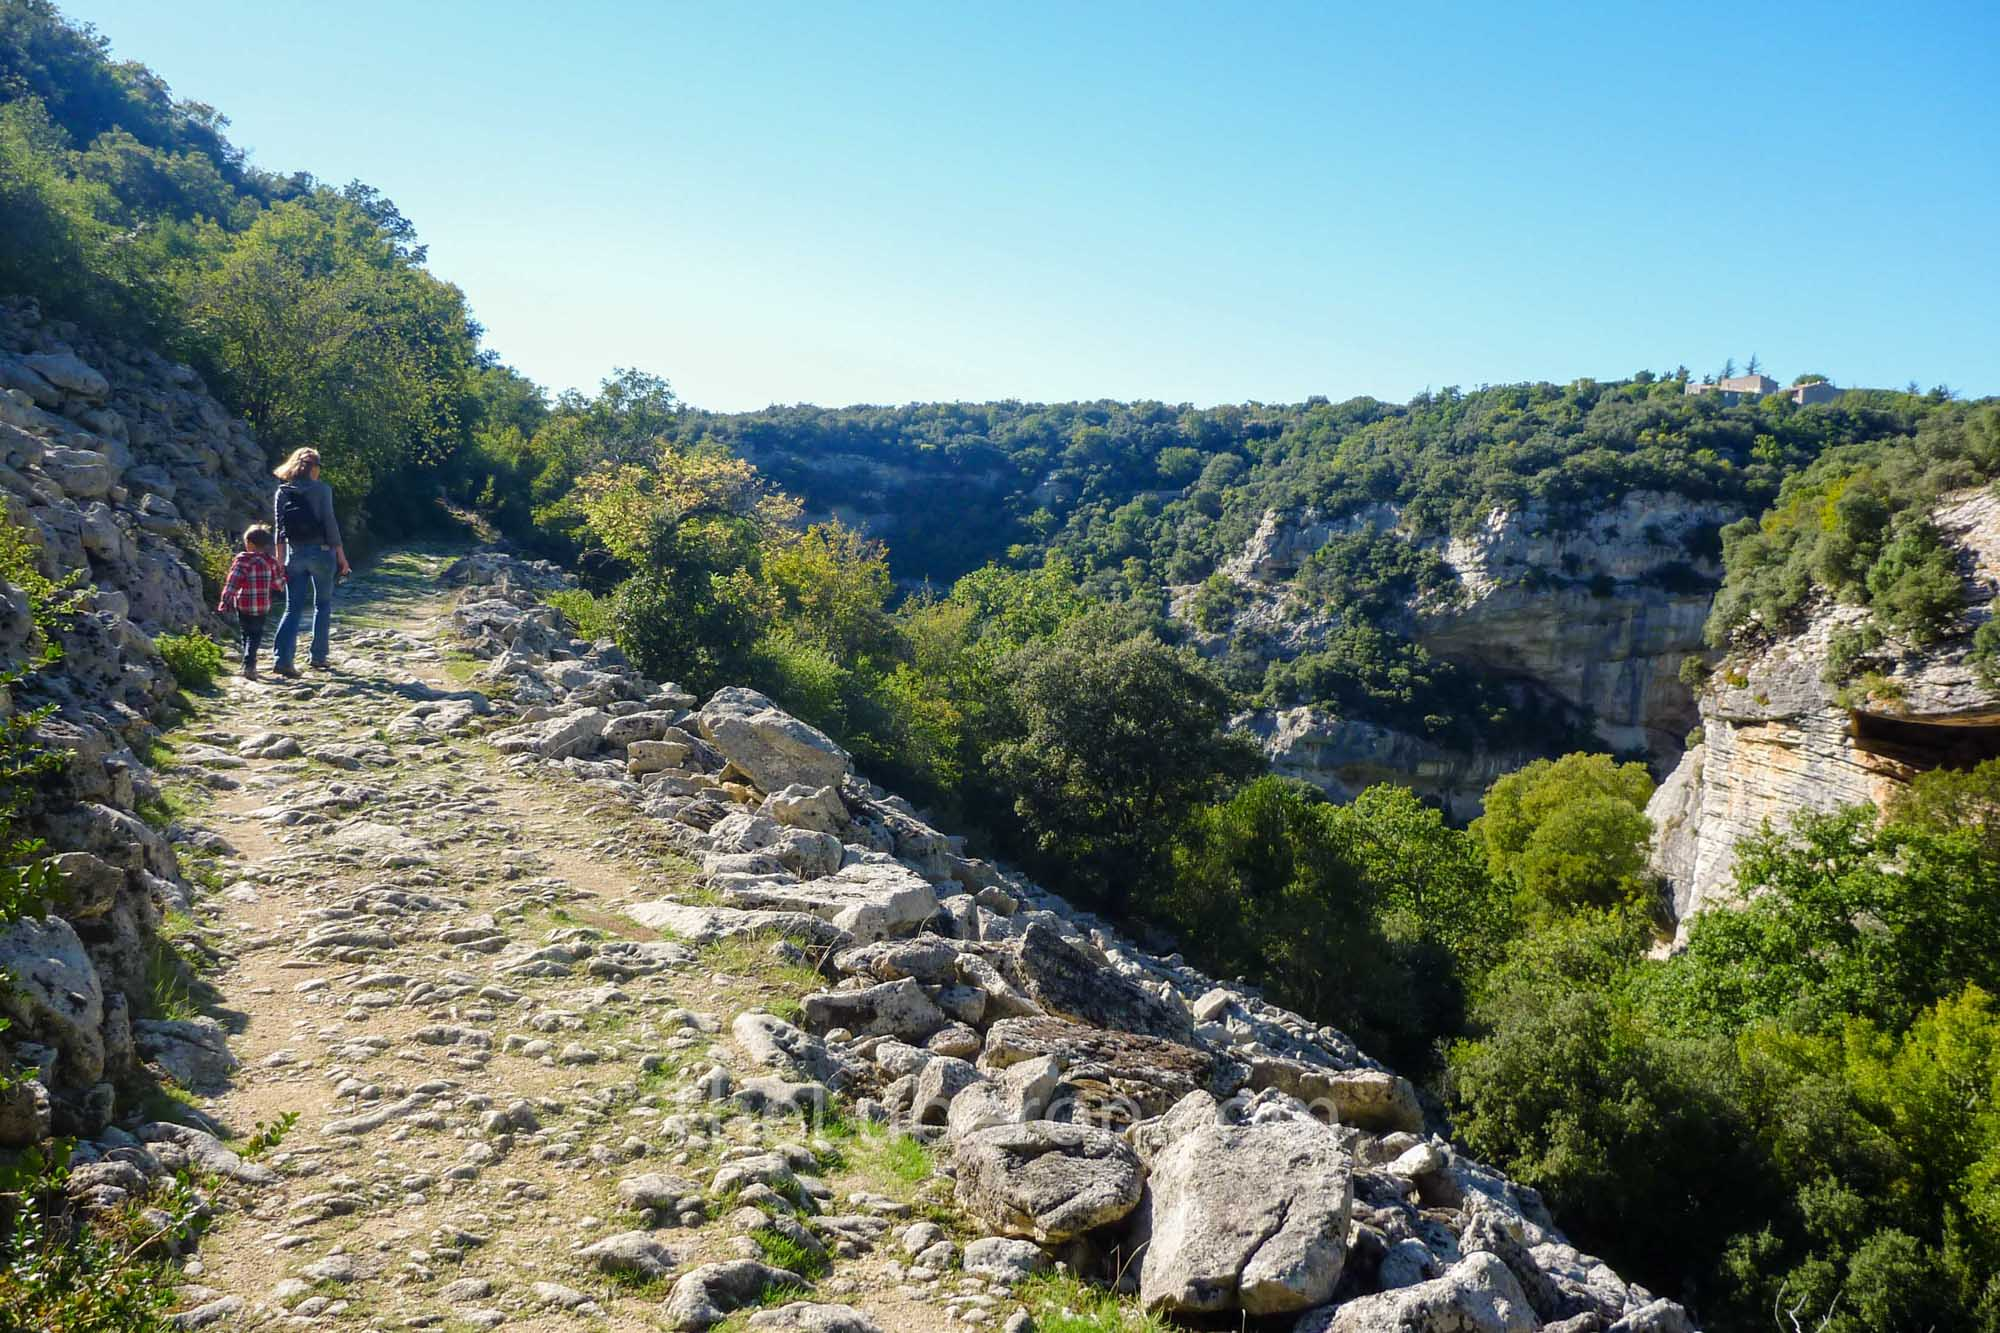 Hikers near Sivergues in the Luberon